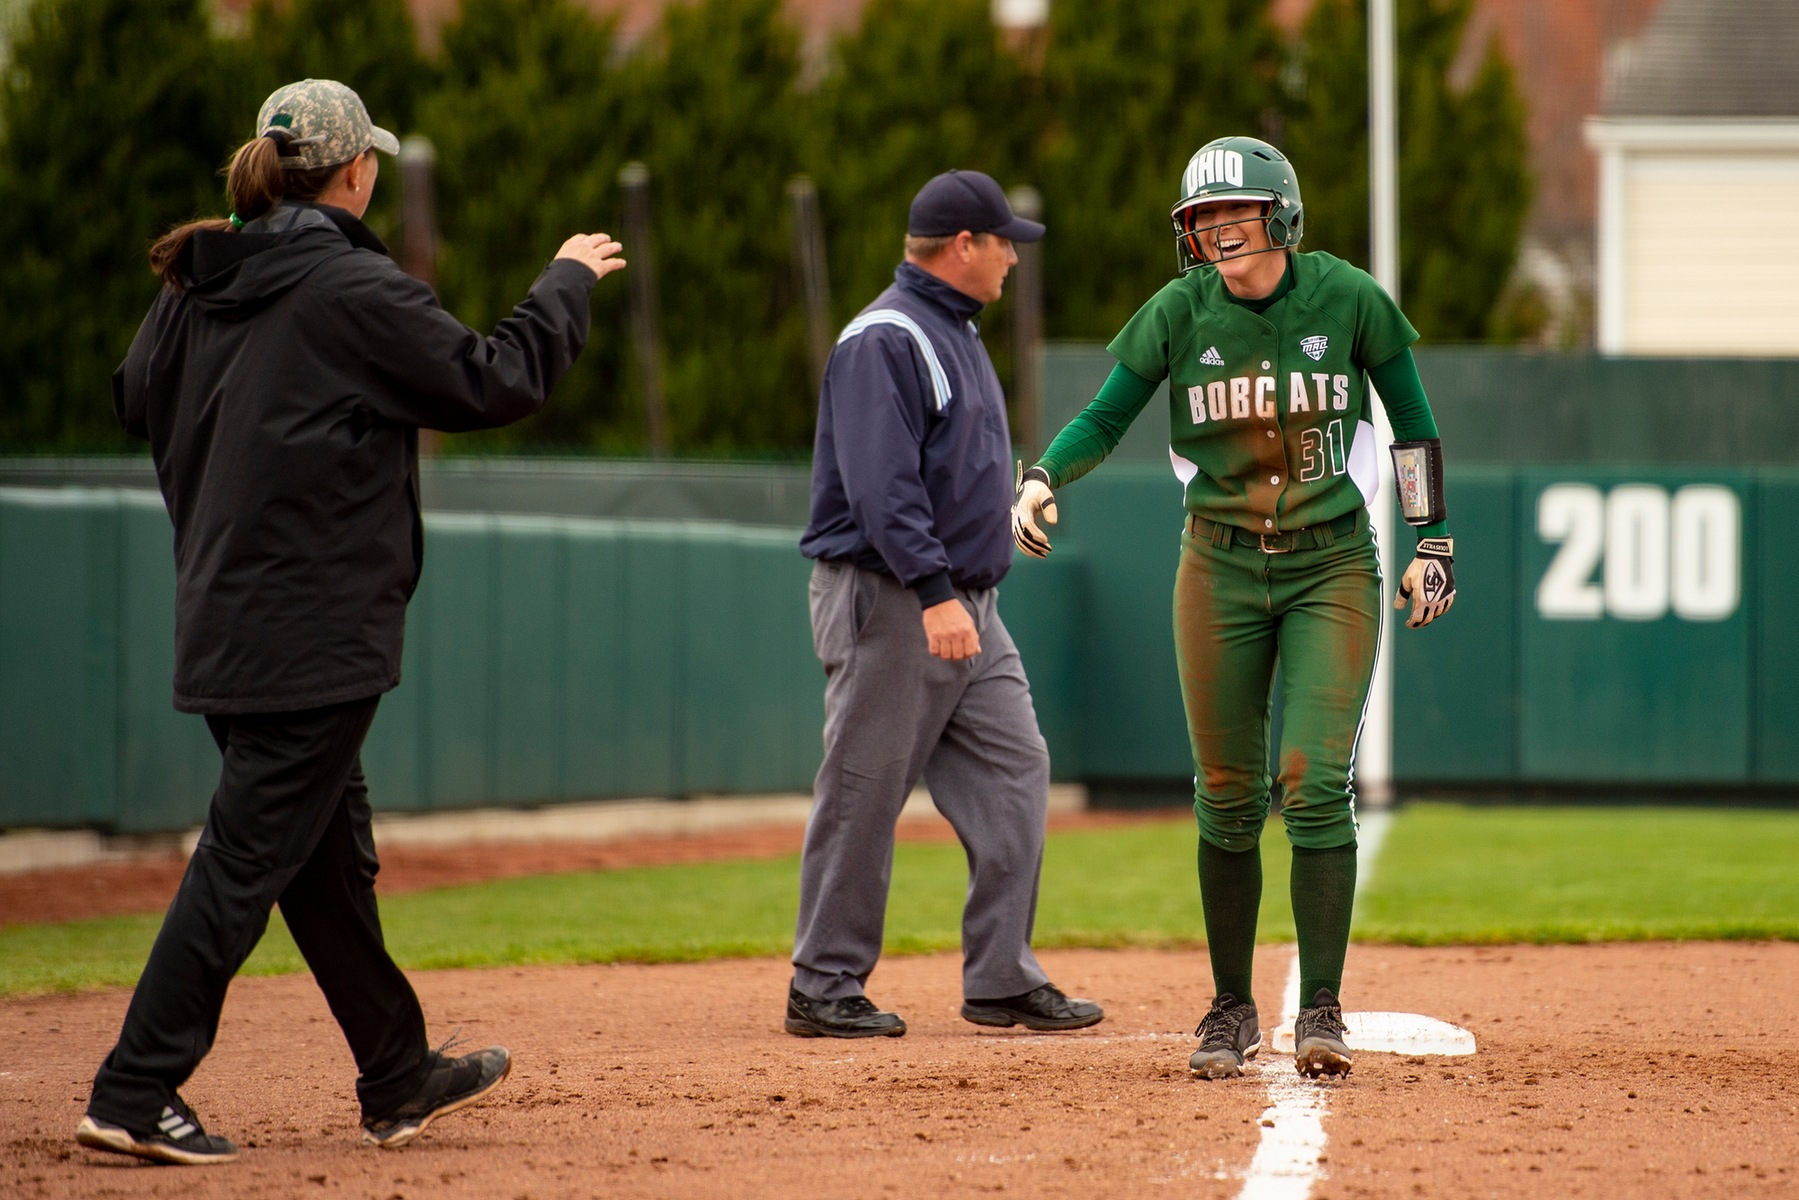 Ohio Softball Downs Marshall, 10-2 in Six Innings